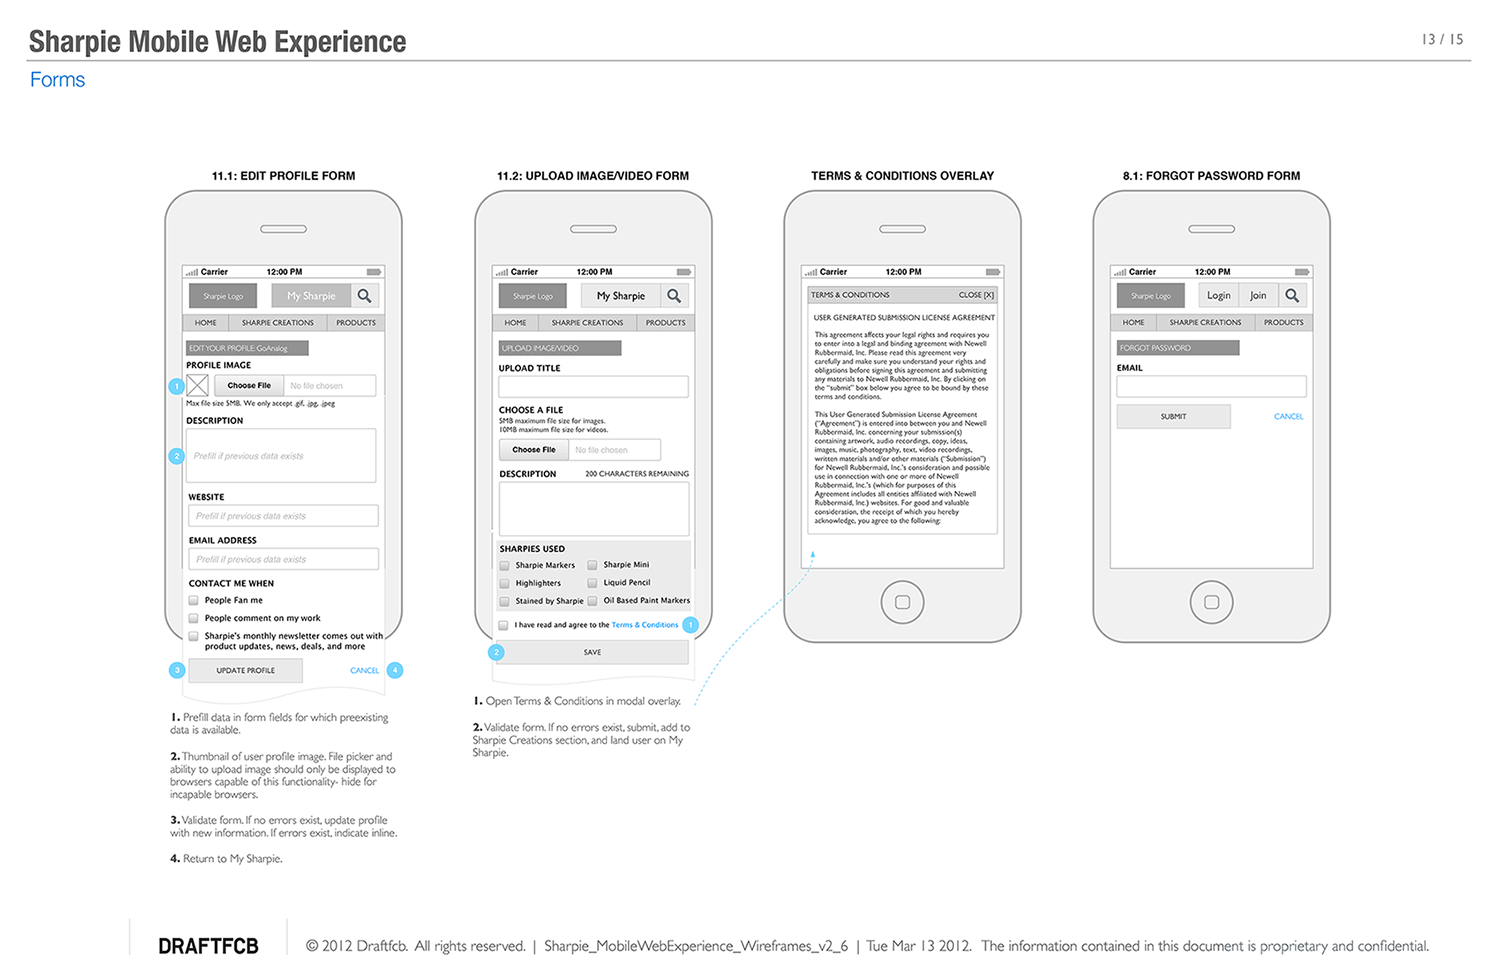 Sharpie_Mobile_Wireframes_v2_6-15_0012_13.png